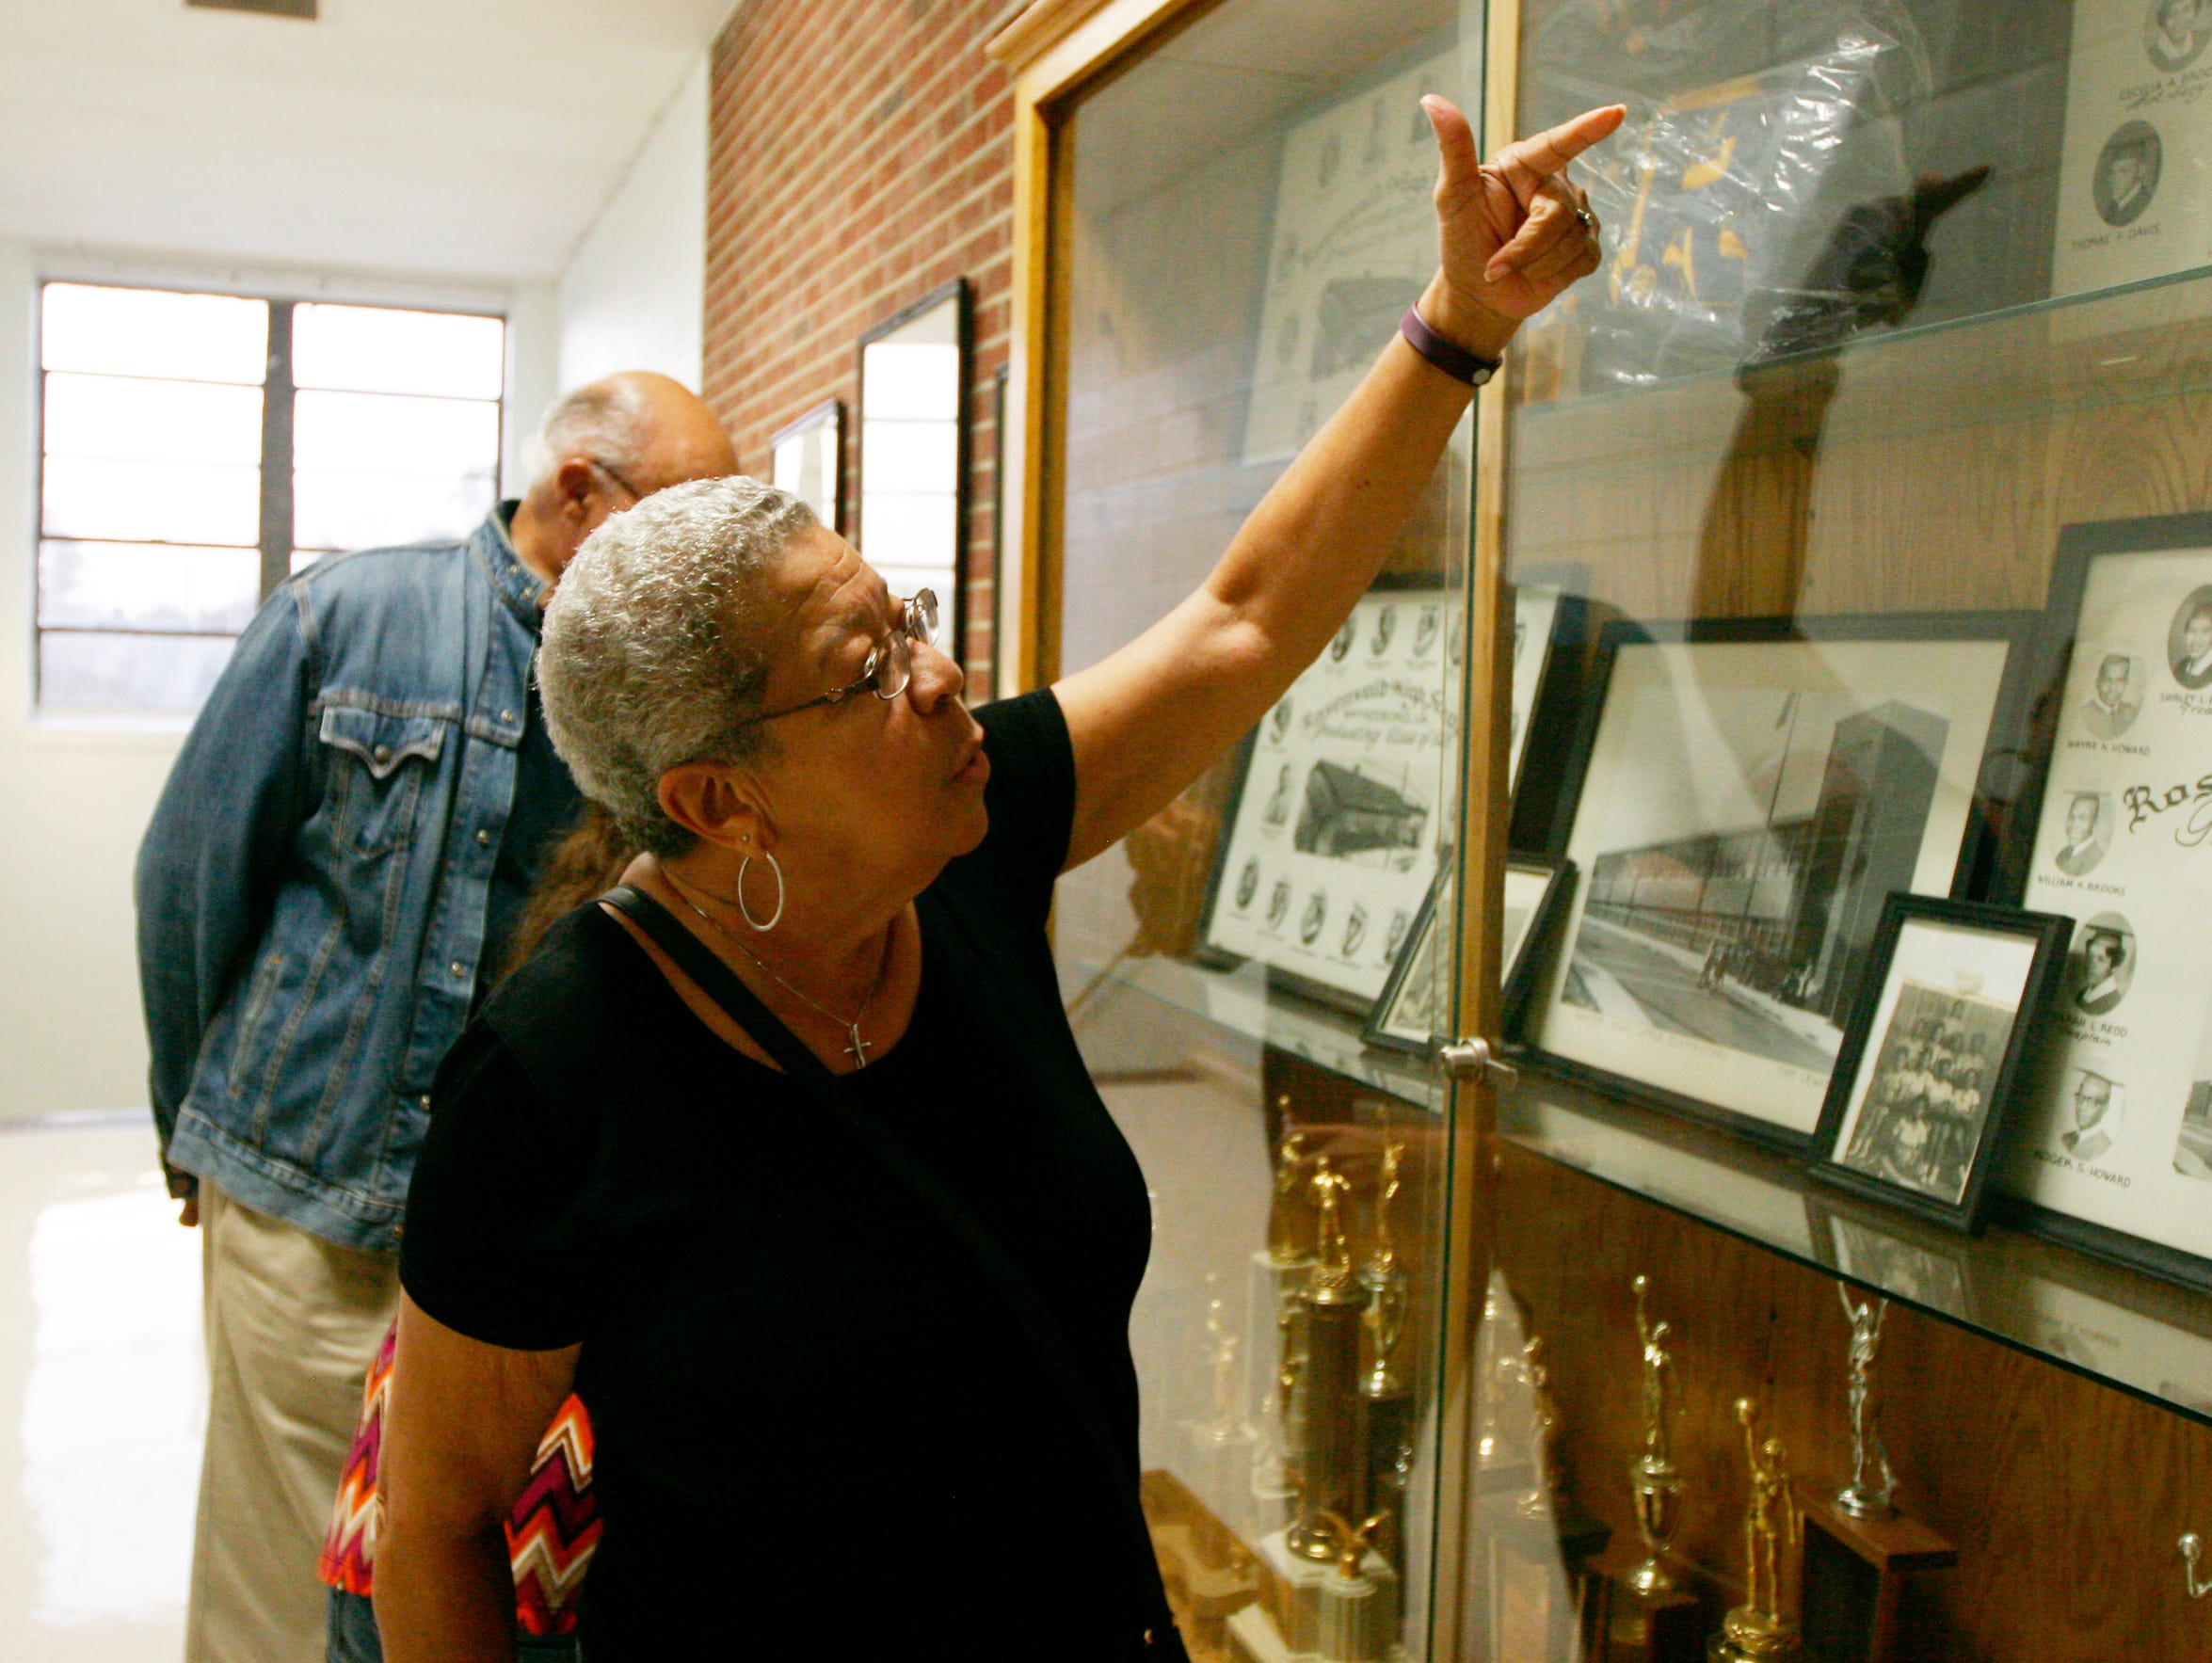 Charlotte Redd Wood looks at old photos from Rosenwald